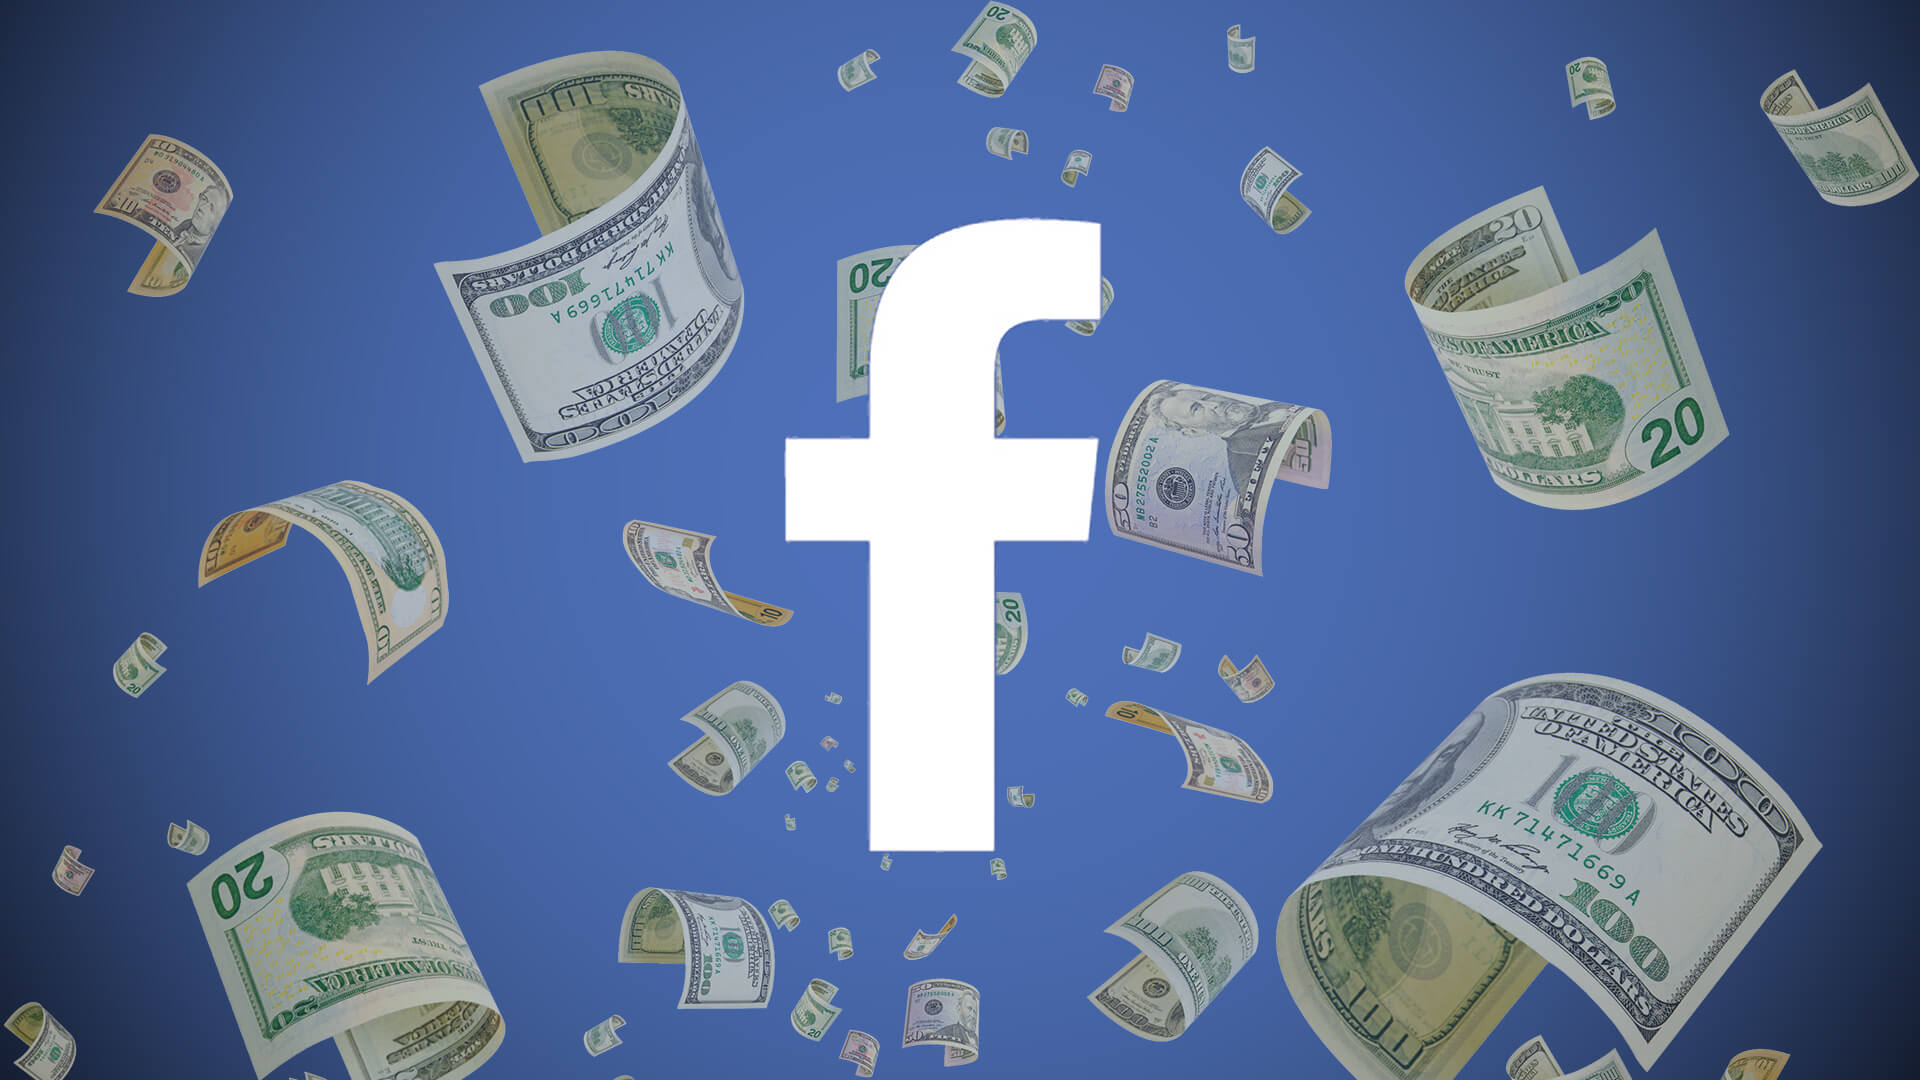 facebook-money-revenue-dollars4-ss-1920.jpg